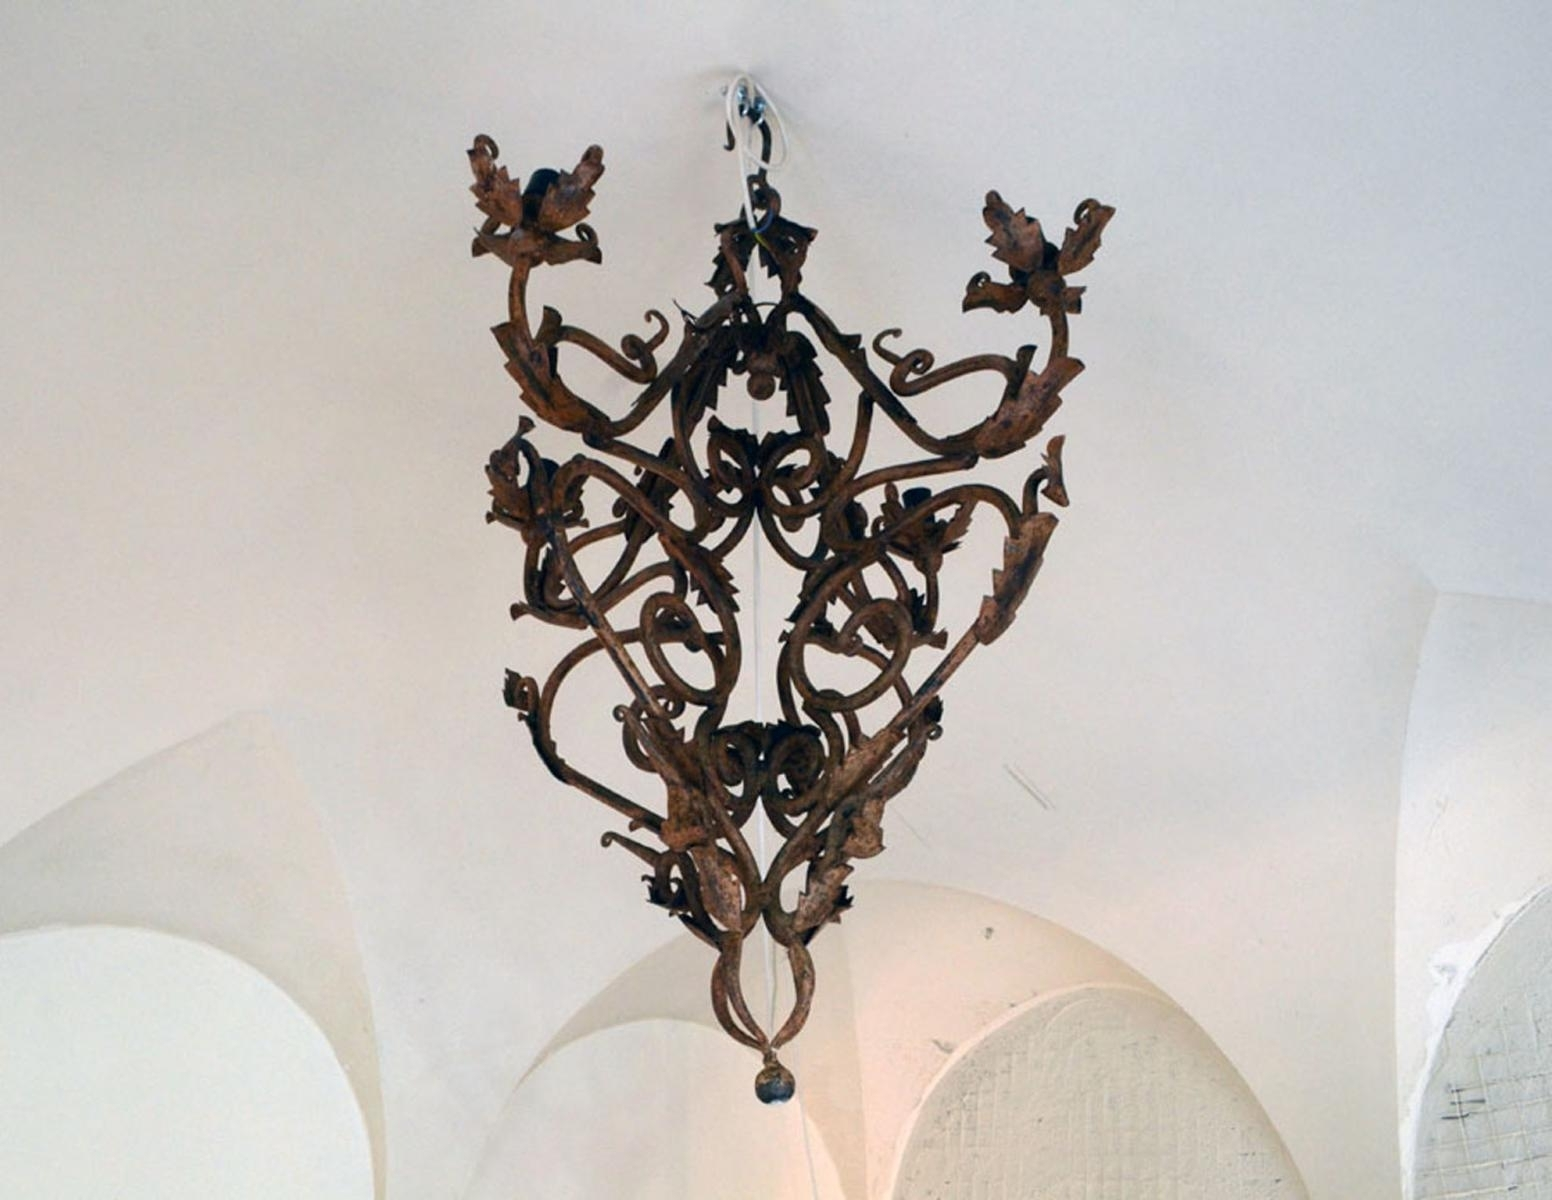 Hand Made Wrought Iron Chandelier, 1800s For Sale At Pamono Within 2019 Wrought Iron Chandeliers (View 8 of 20)